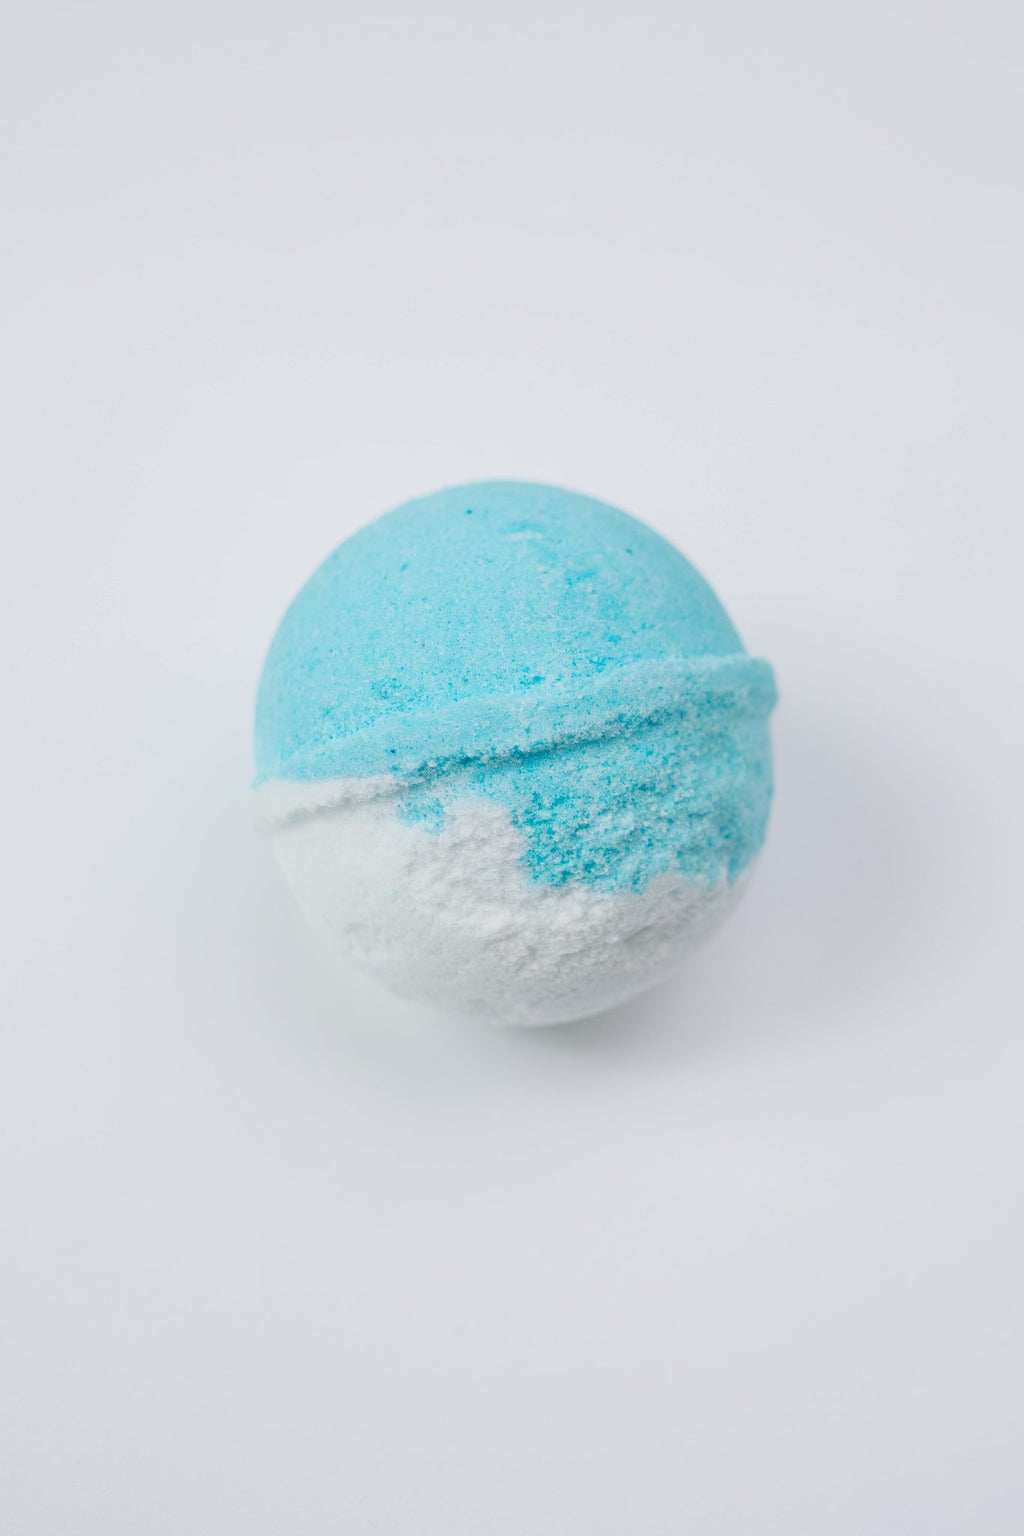 Cottage Garden Bath Bomb in Winter Wonderland-11-19-2020, Accessories, BFCM2020, Group A, Group B, Group C, Group X, Holiday Gifts-Womens Artisan USA American Made Clothing Accessories